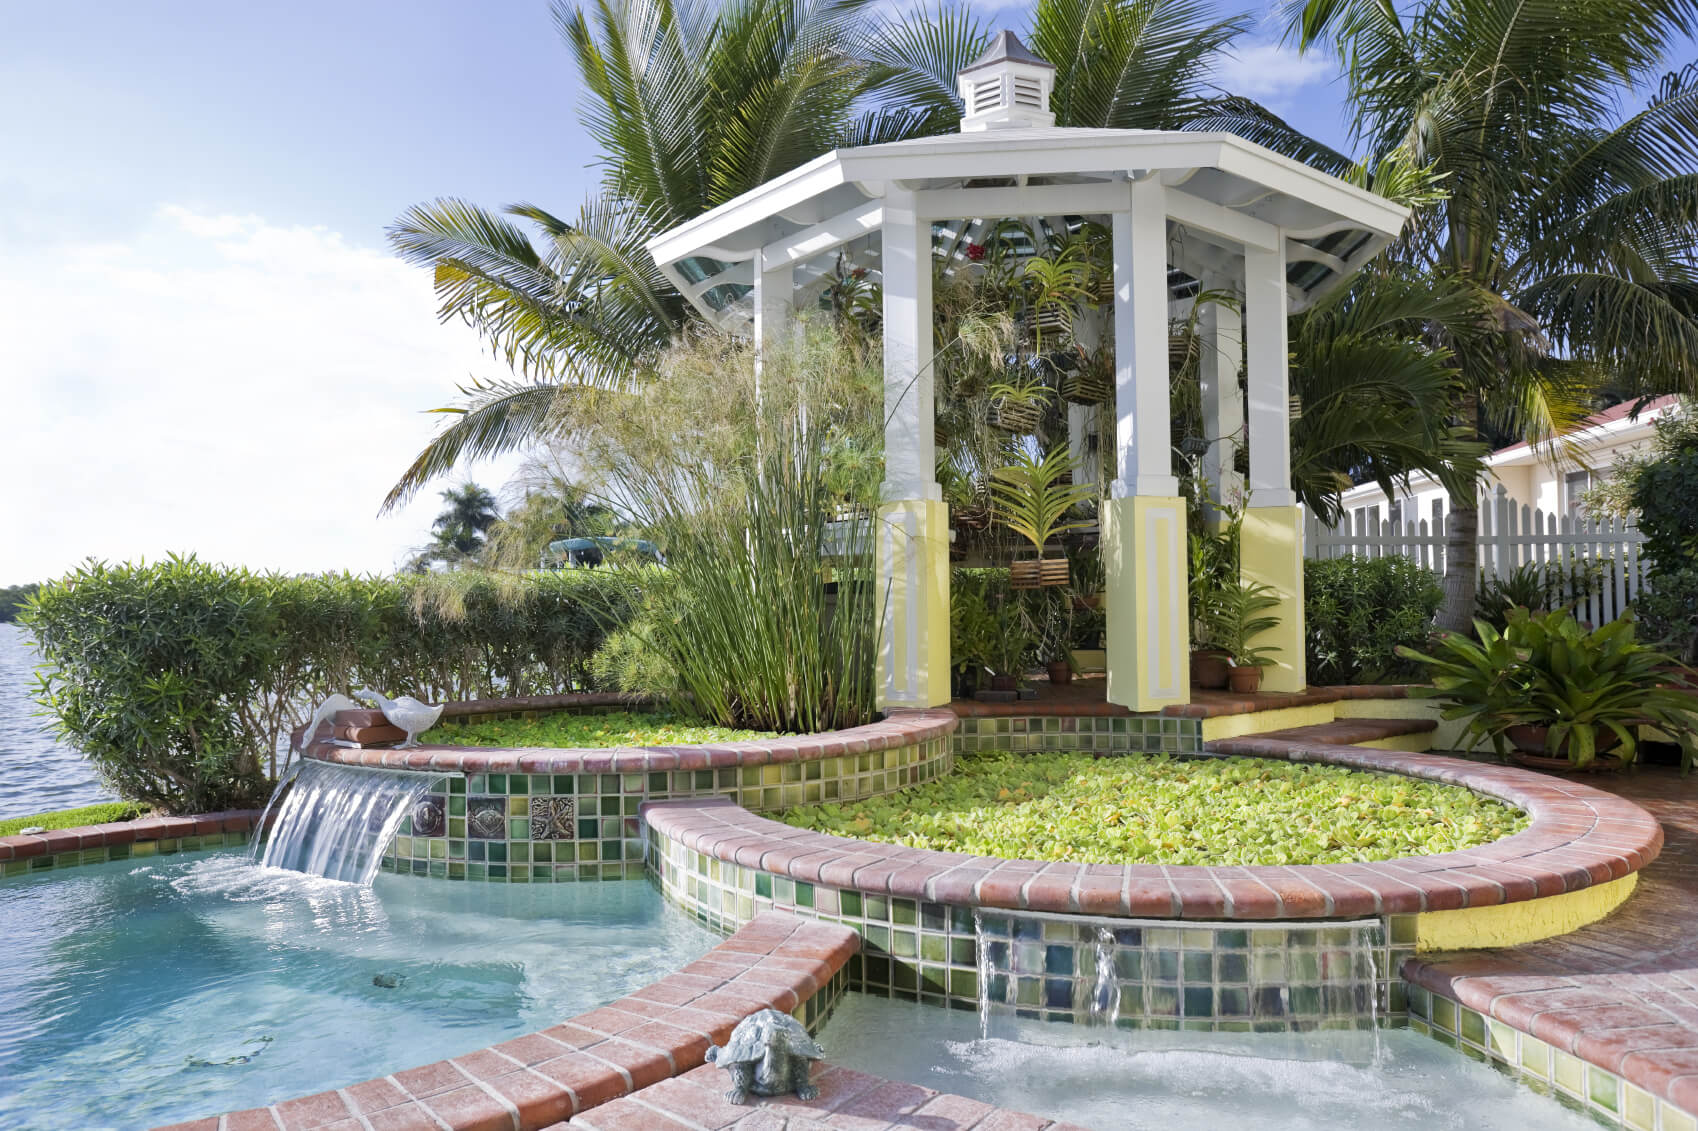 This gazebo sits high, overlooking the entire pool area from its perch. This structure ties into the design and gives the area some more depth.